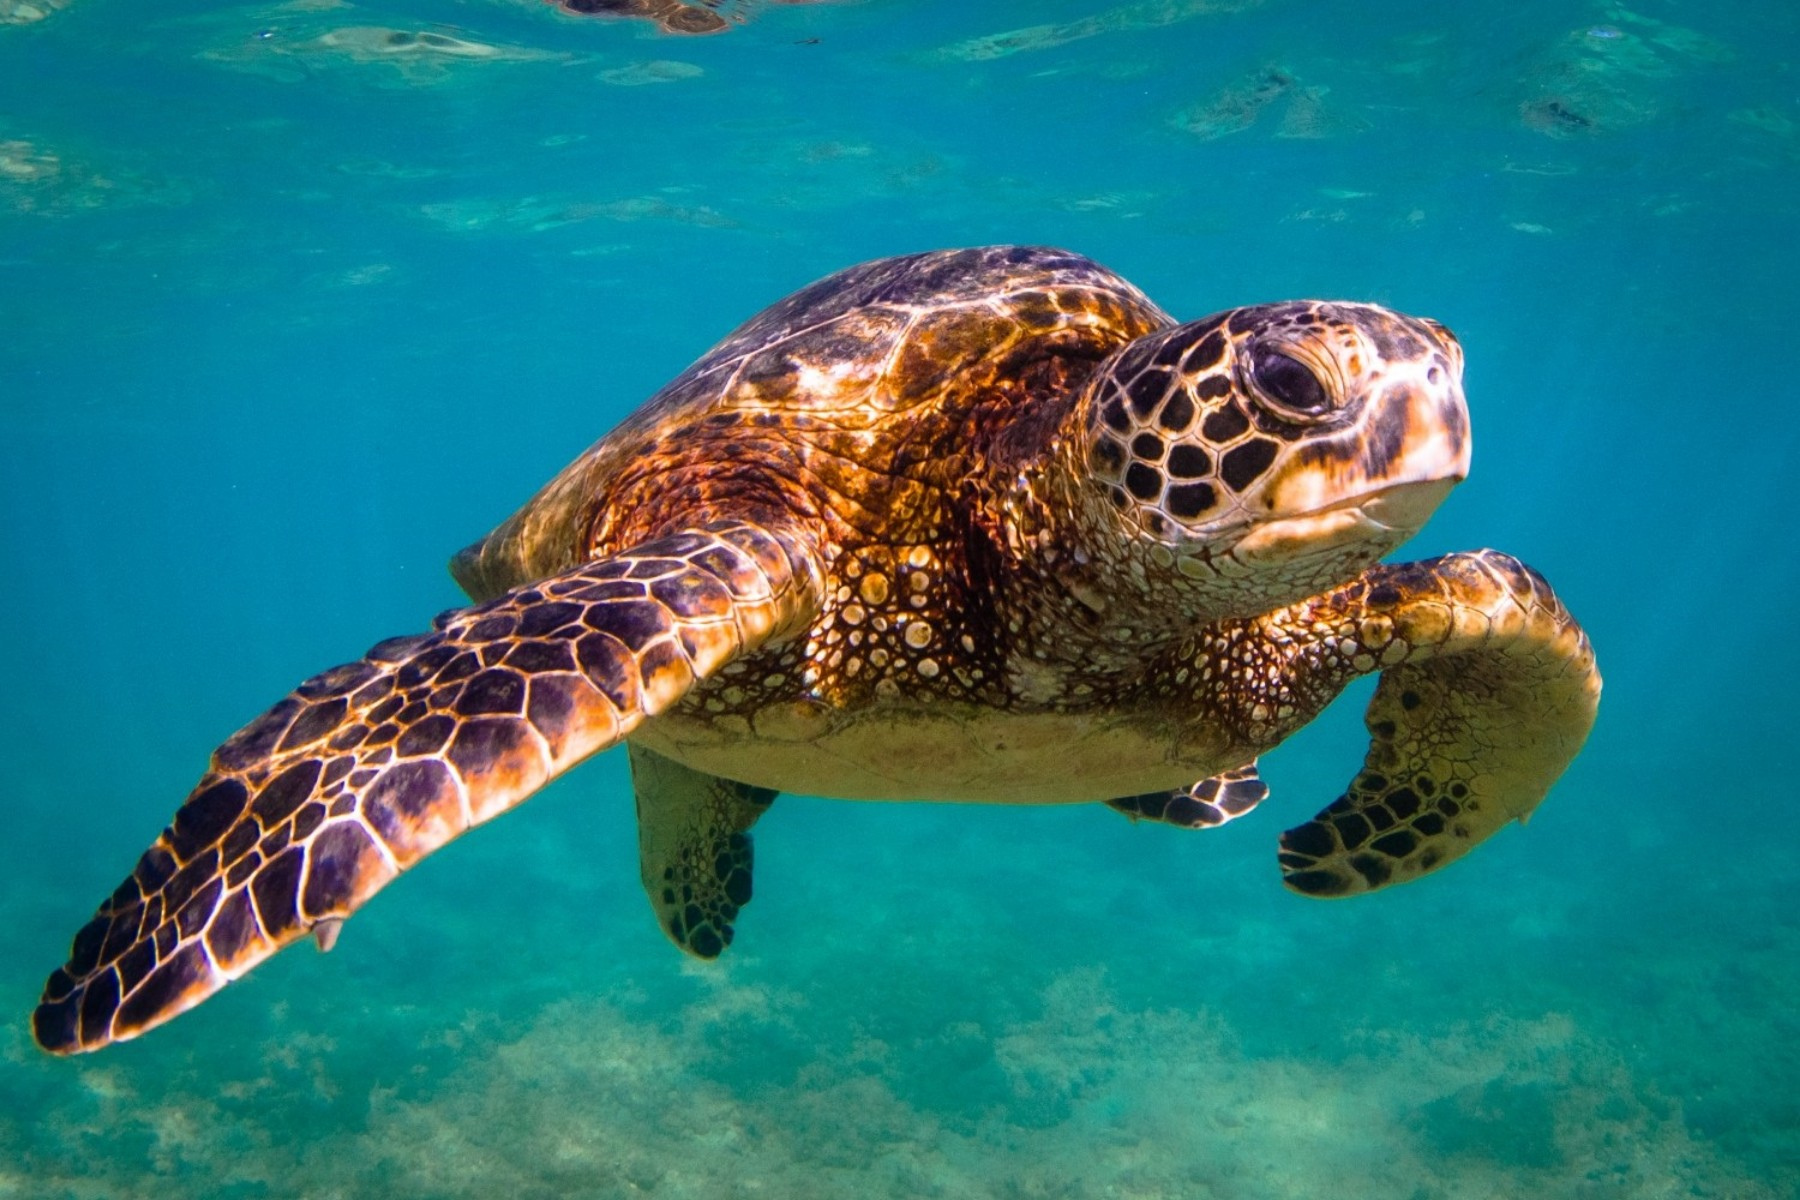 turtle sea turtles ocean save animals marine flippers reptiles hawaiian animal tropical help environment pacific water reptile foundation things beach